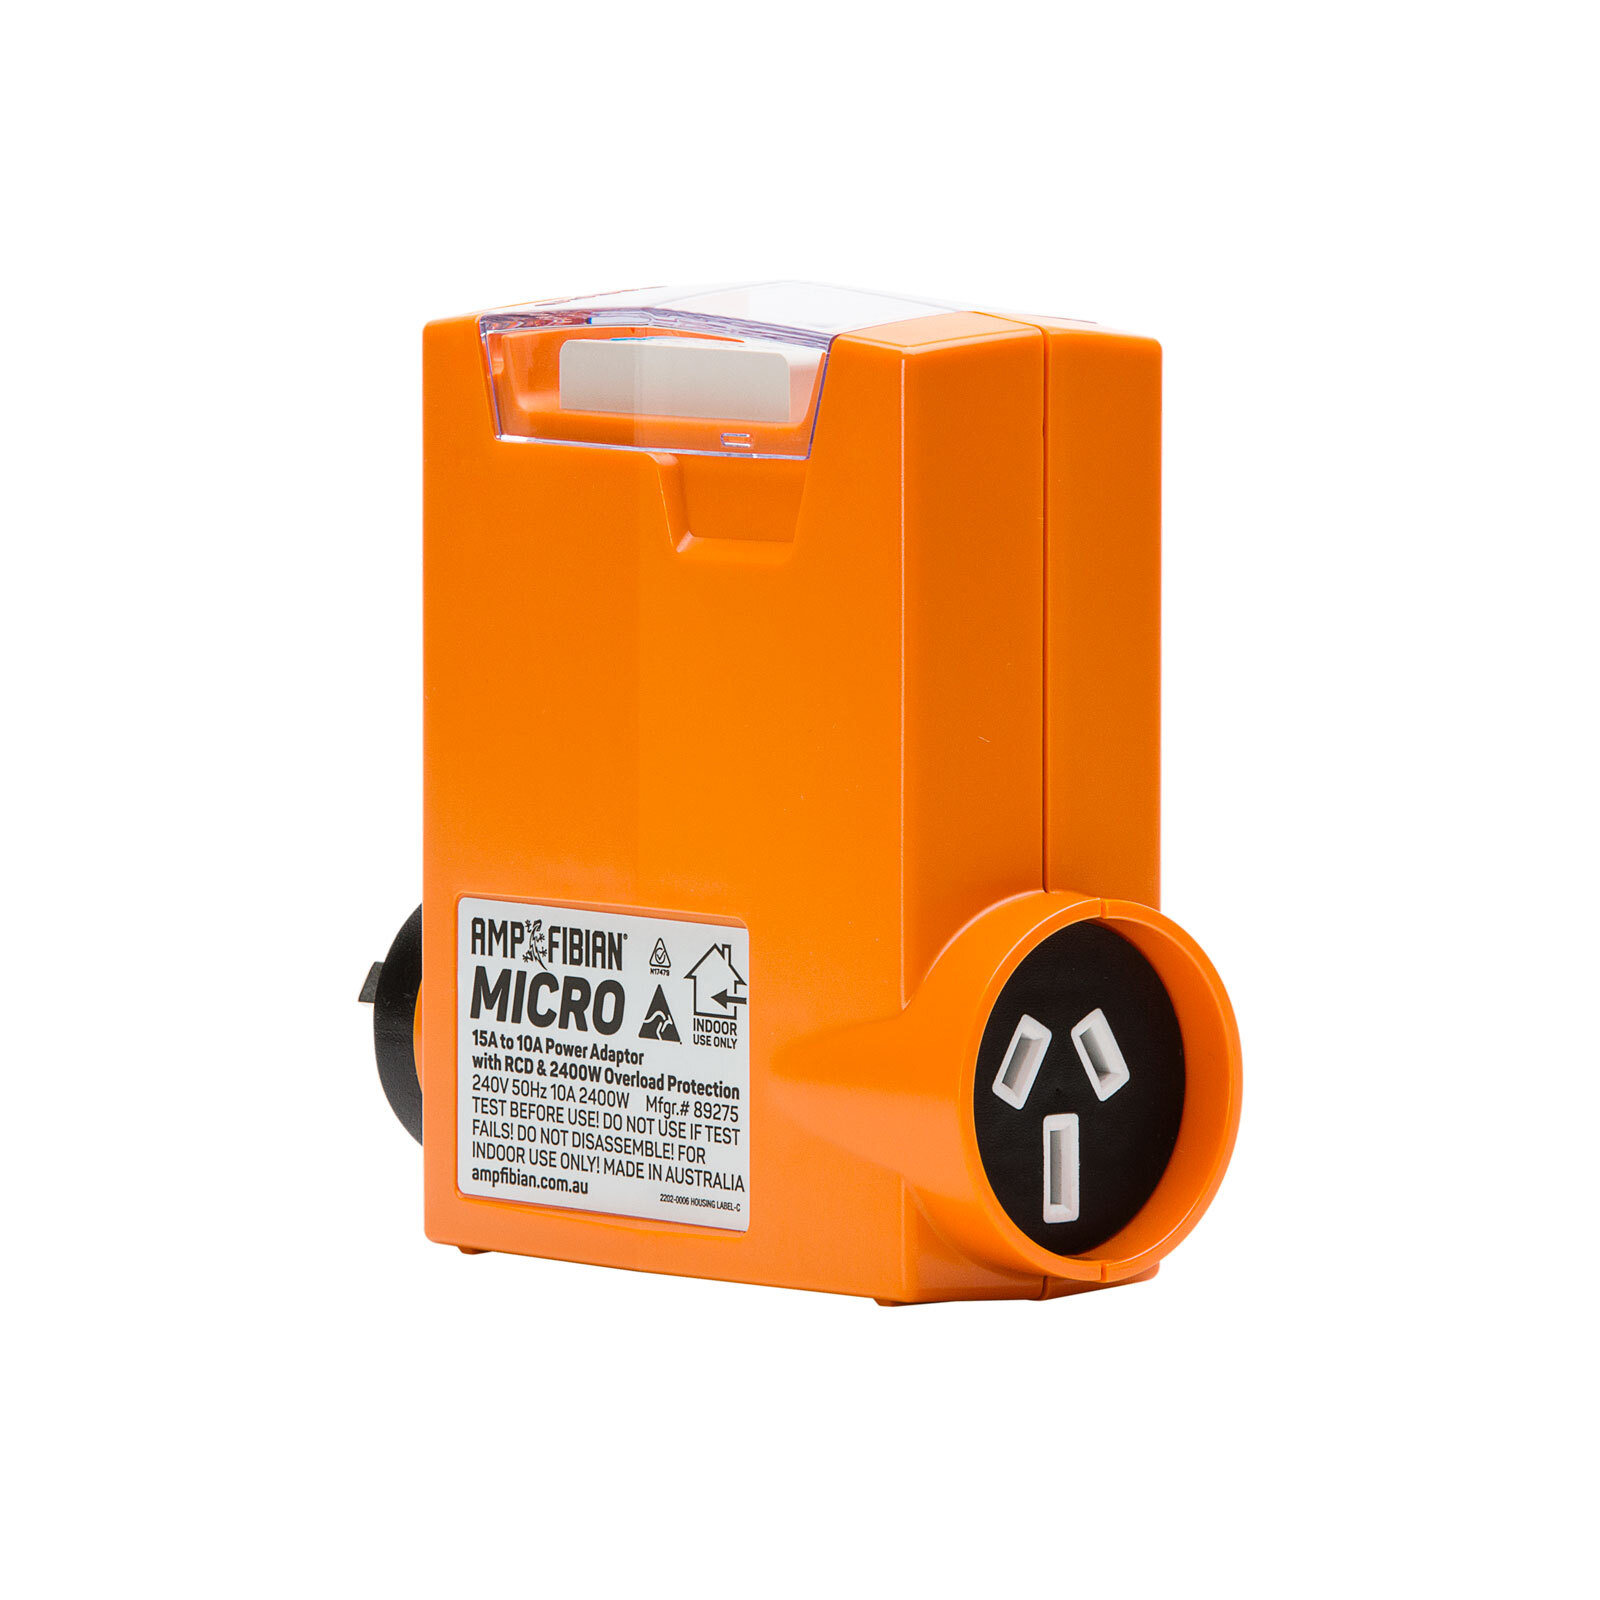 Ampfibian 15A To 10A Micro Compact Power Adaptor